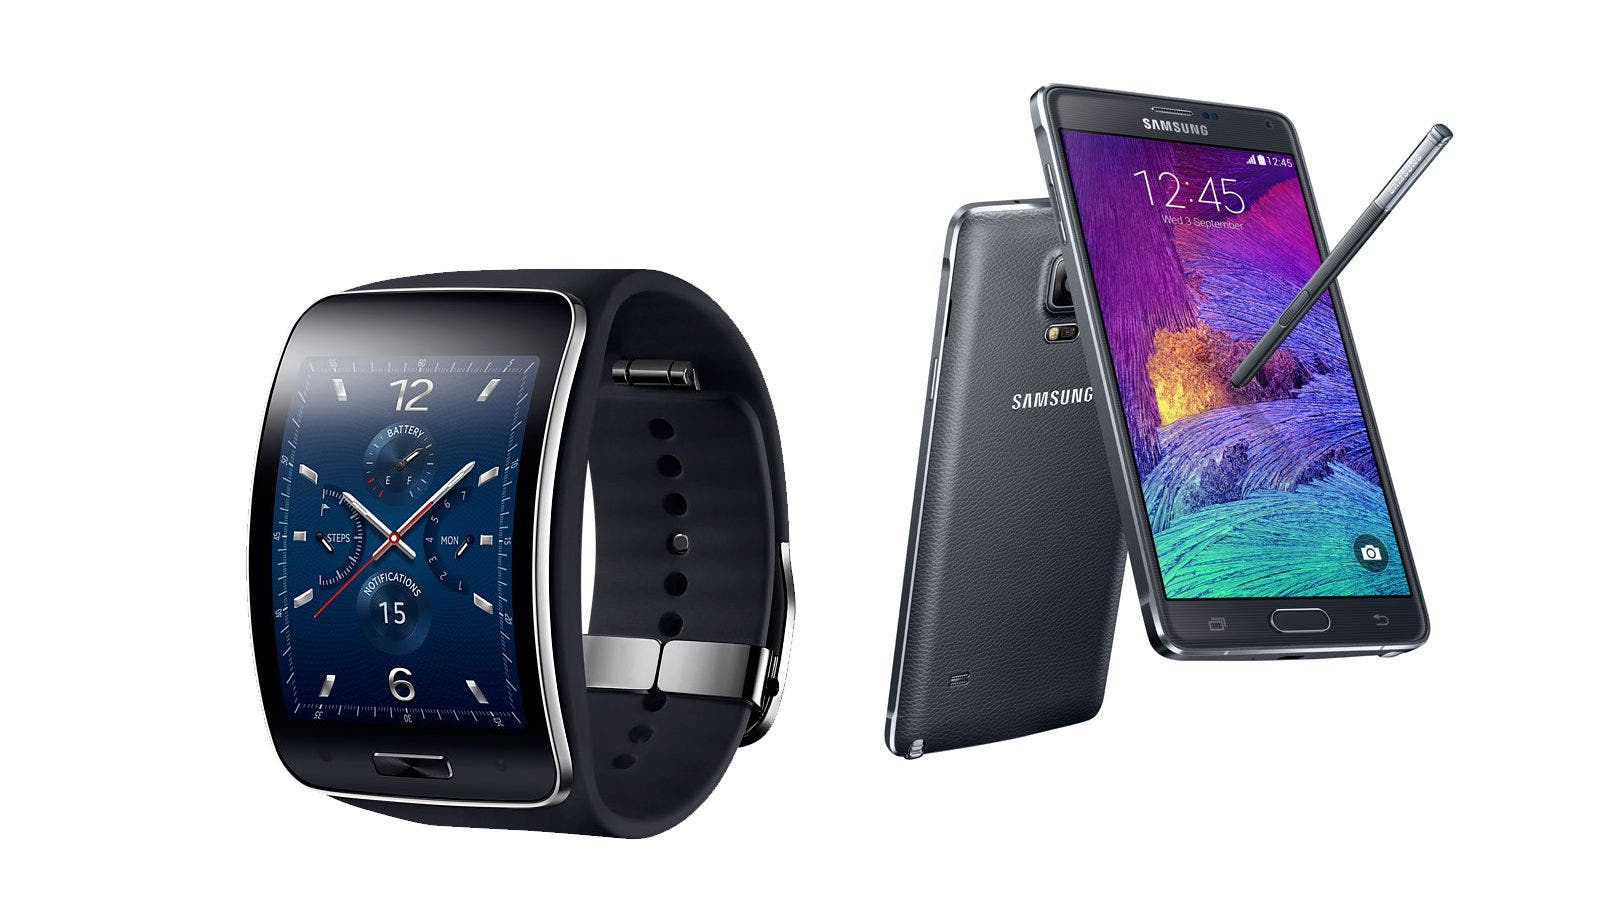 Galaxy-Note-4-und-Gear-S